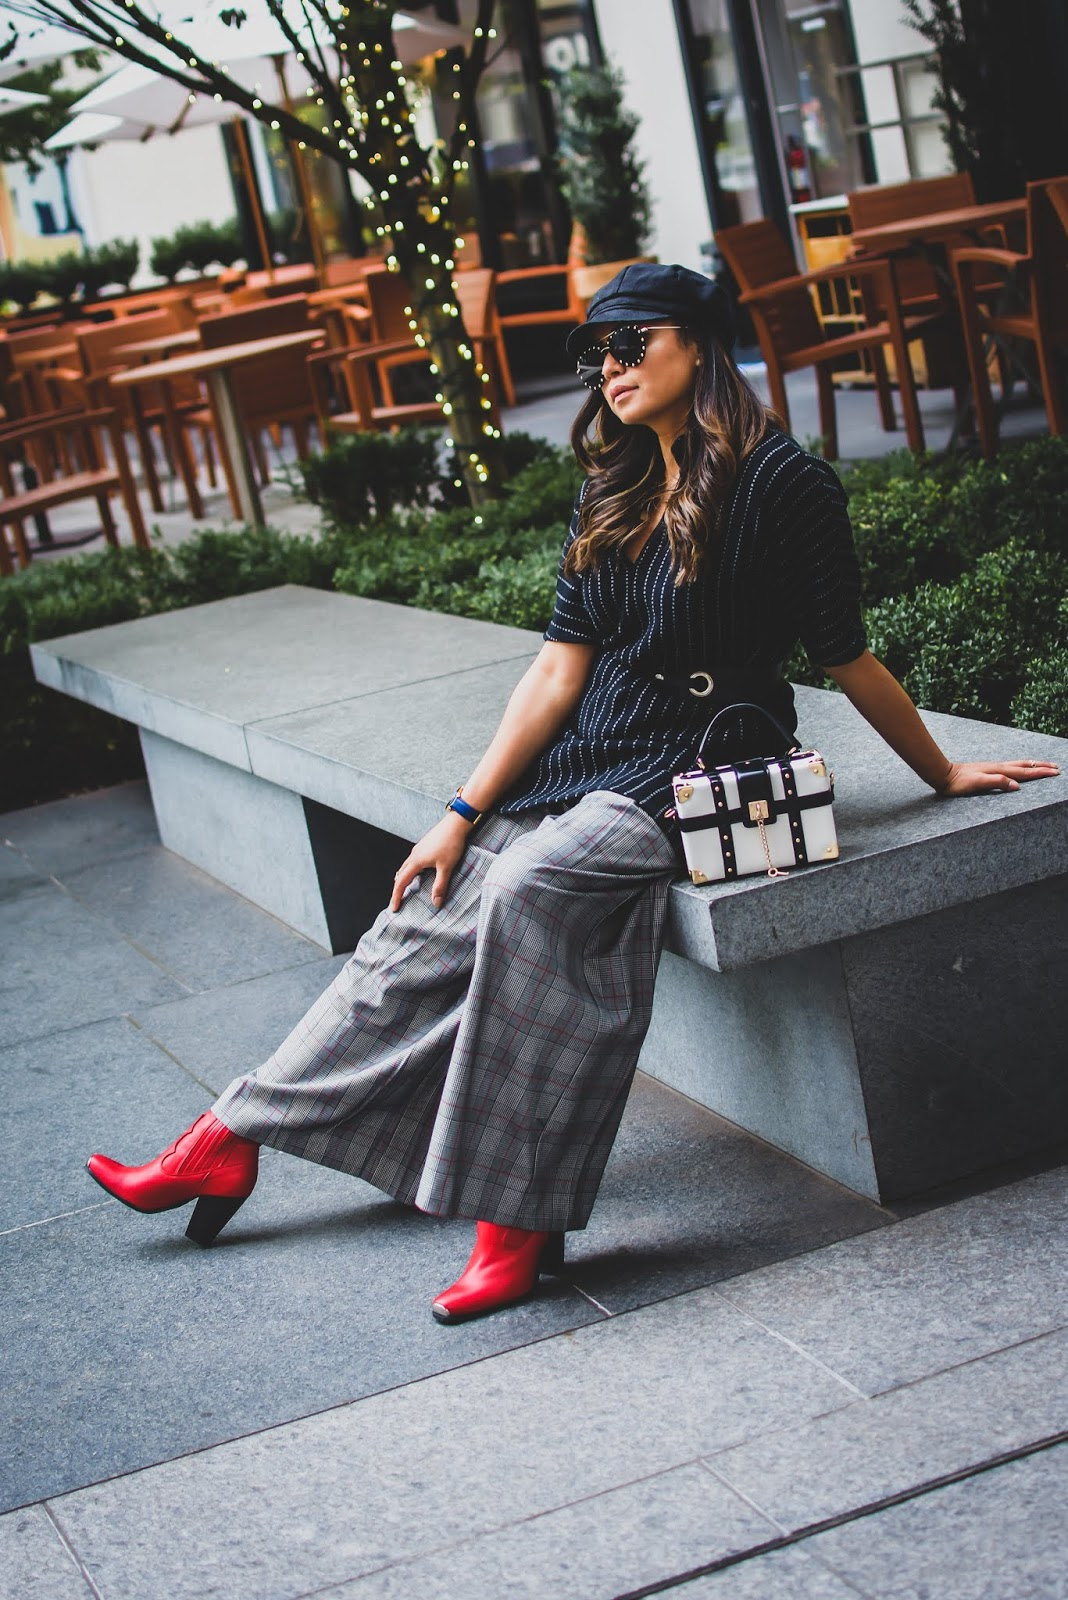 how to wear plaid in winter, fall fashion, mom life, tips on juggling life, dress as shirt, belted wool dress, red cowboy boots, boots of the season, fashion, street style, layered look, cabbie cap, myriad musings